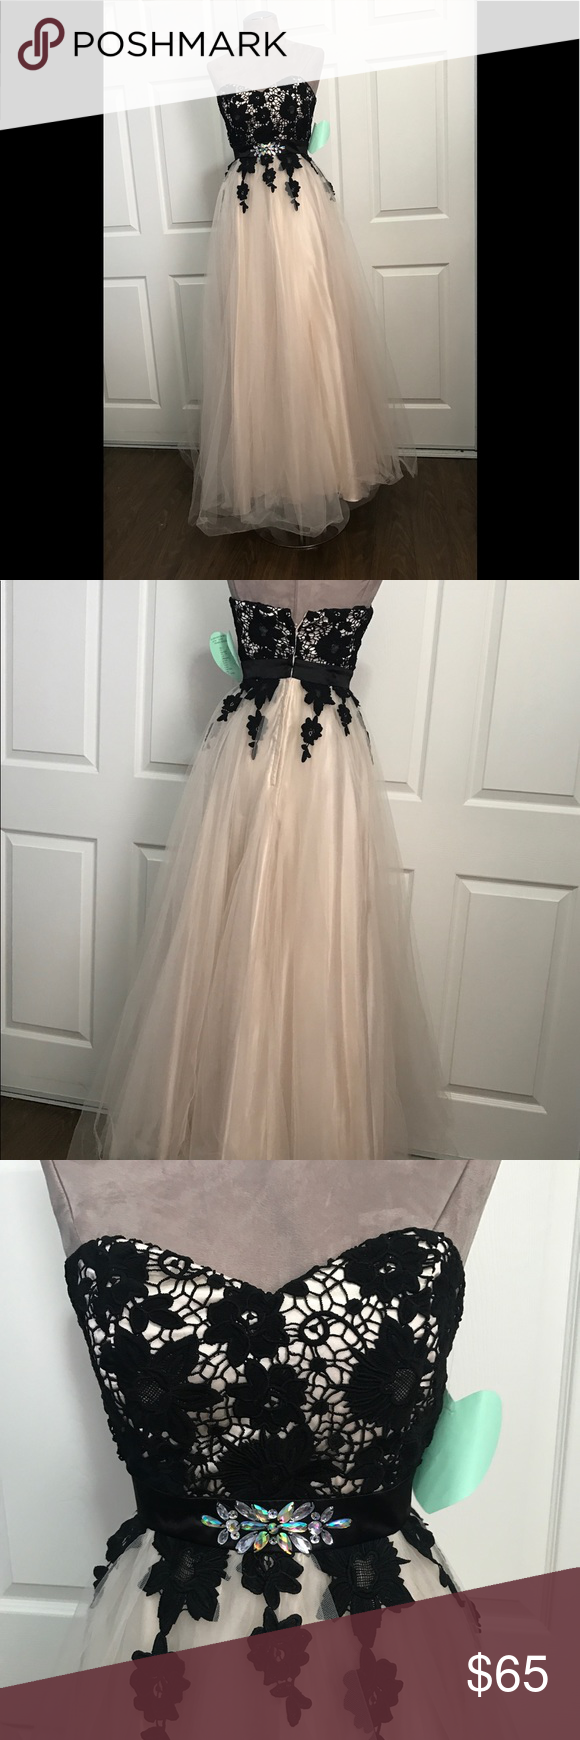 Masquerade ball gown nwt in eshop at poshmarket pinterest